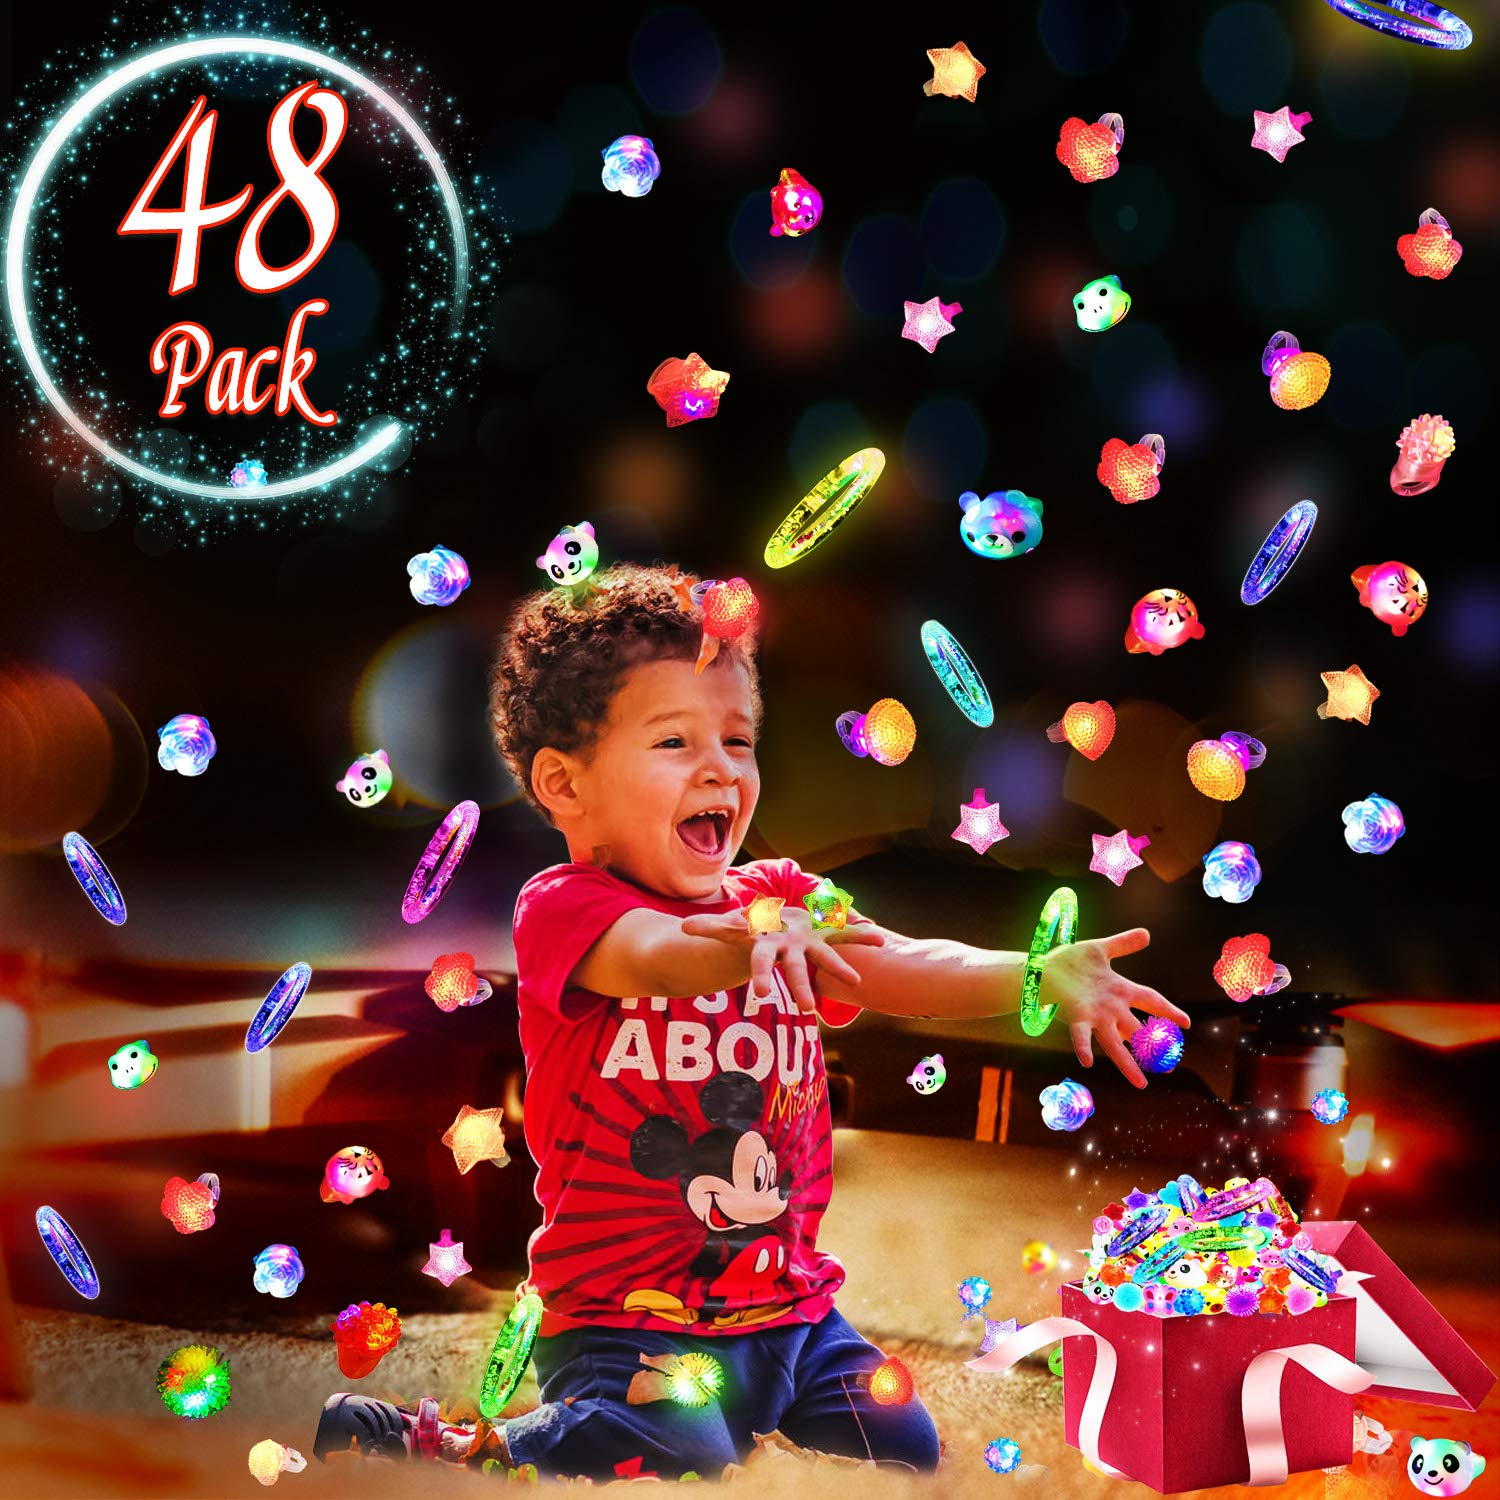 AY 48 Pack LED Light Up Party Favors for Kids and Adults for St. Patrick's Day Easter Birthday Party Gift Include 20 Pack Jelly Rings 10 Pack Diamond Rings 6 Pack Animal Rings and 12 Pack Bracelets